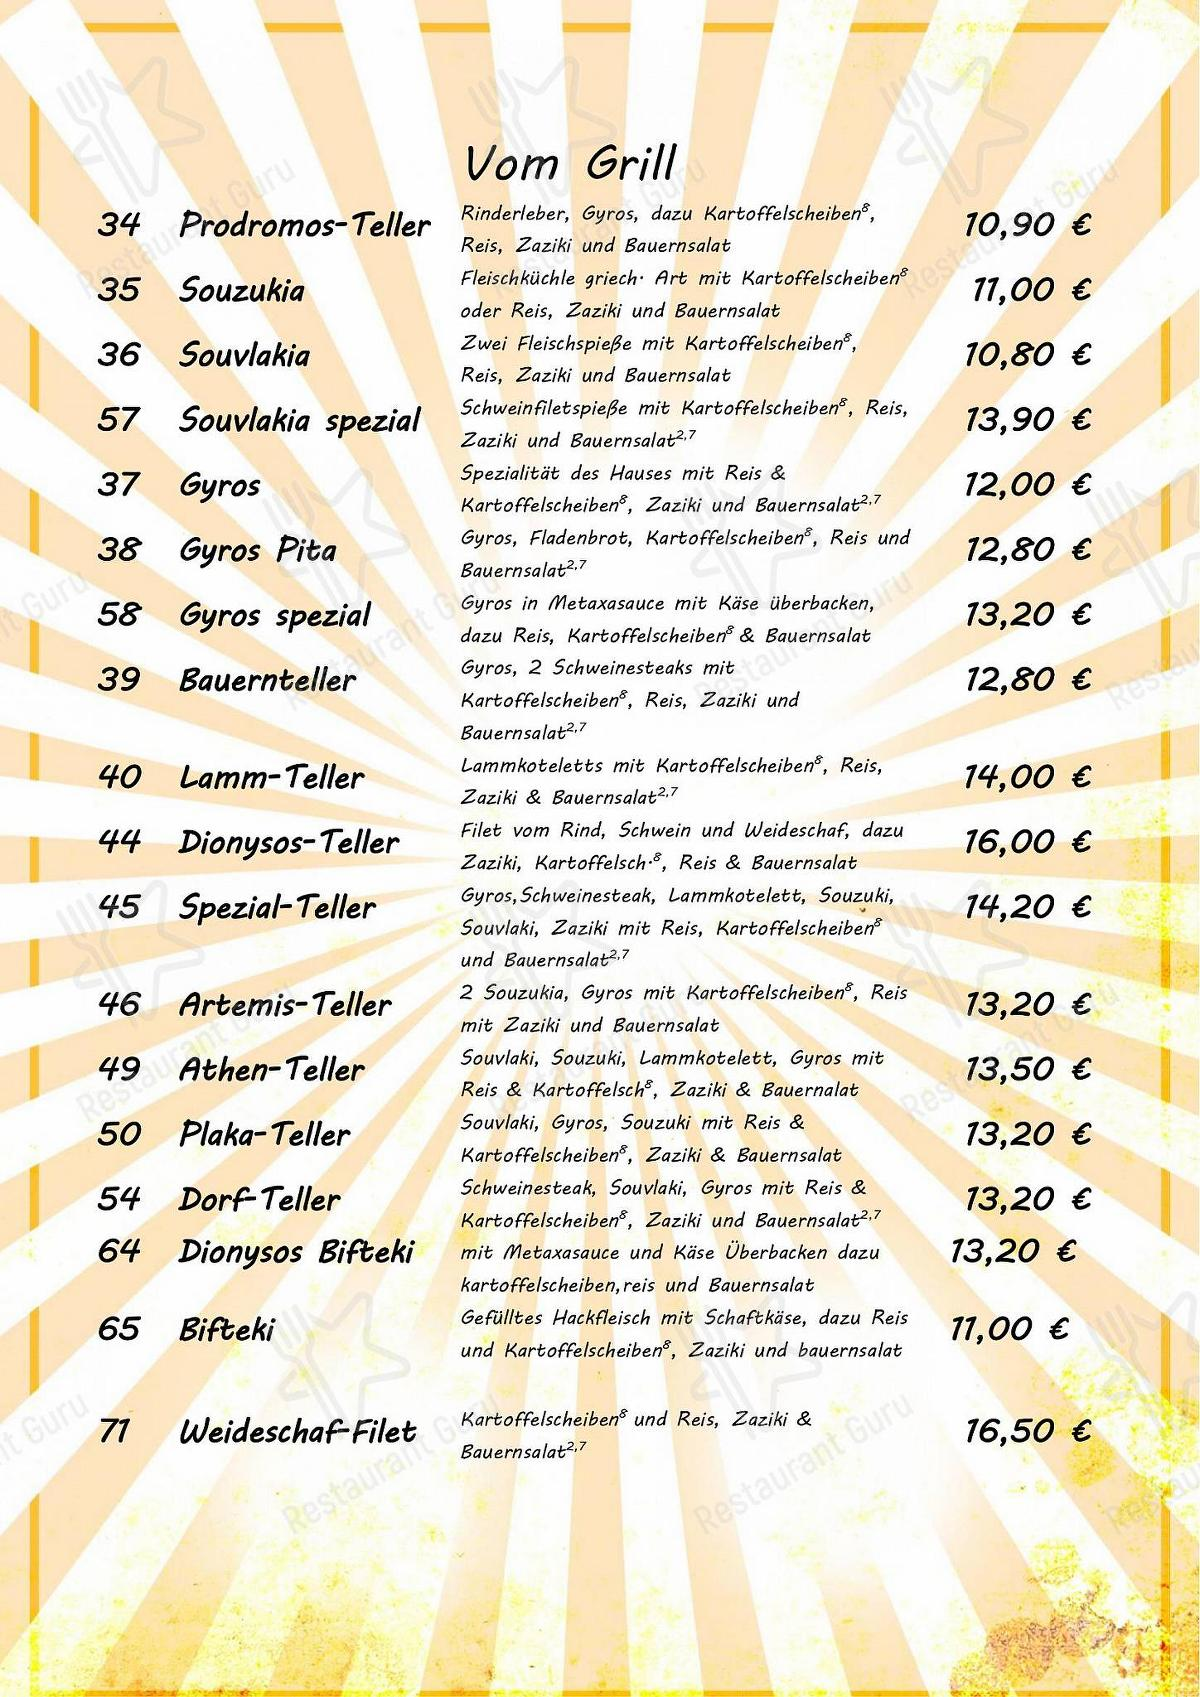 Dionysos Traube menu - dishes and beverages